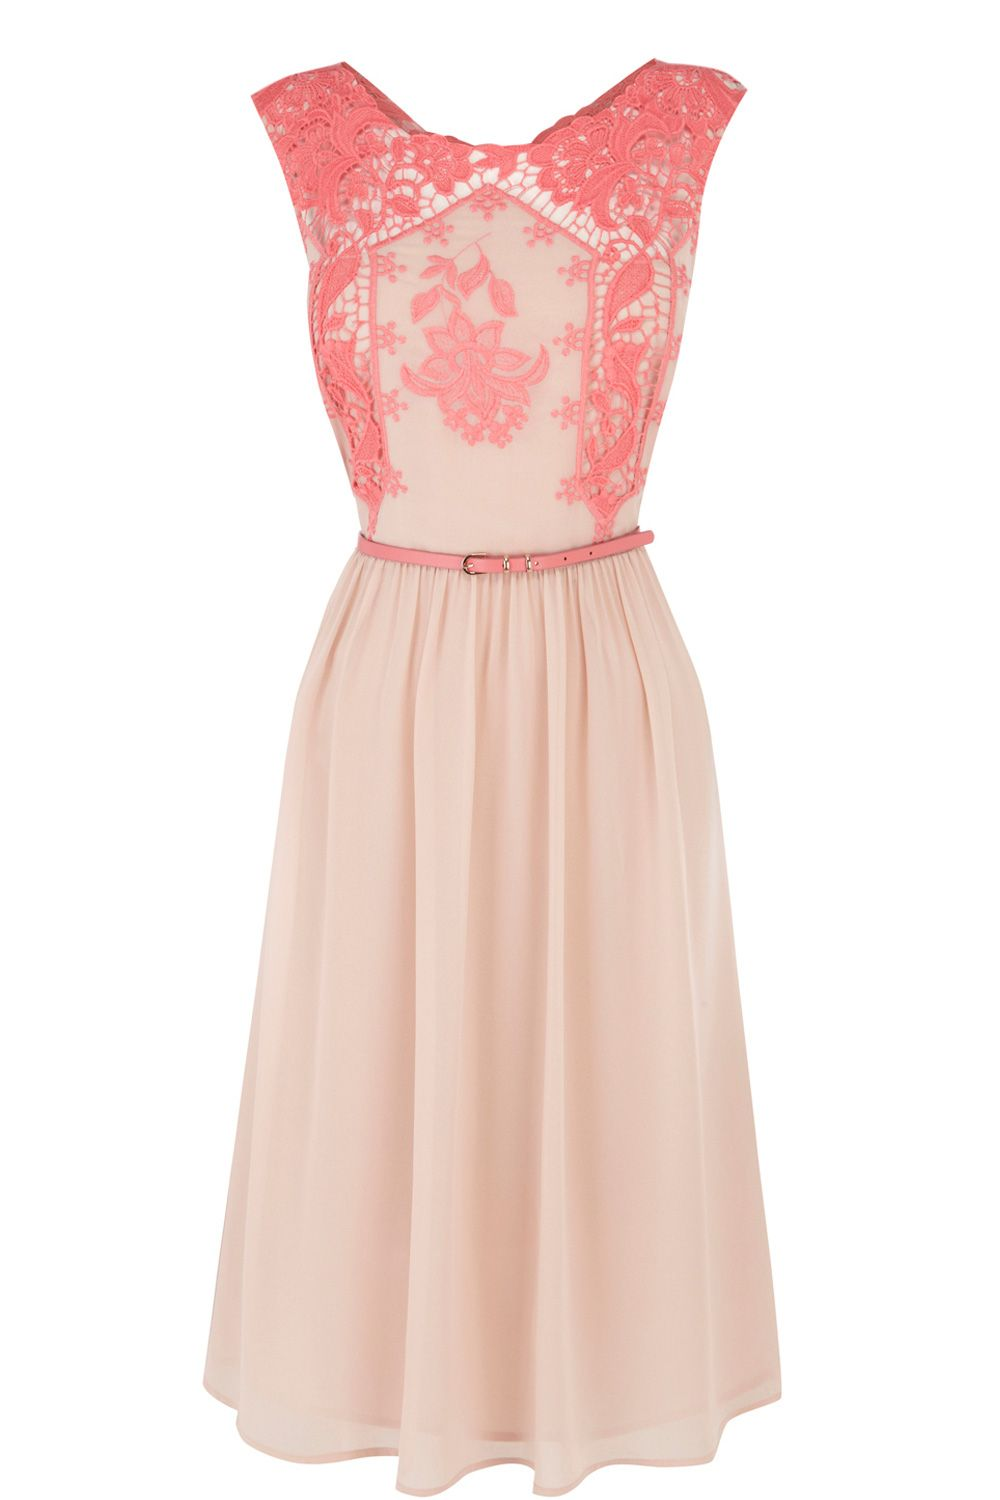 Wedding Guest Dresses For Every Shape, Style And Budget | Midi ...